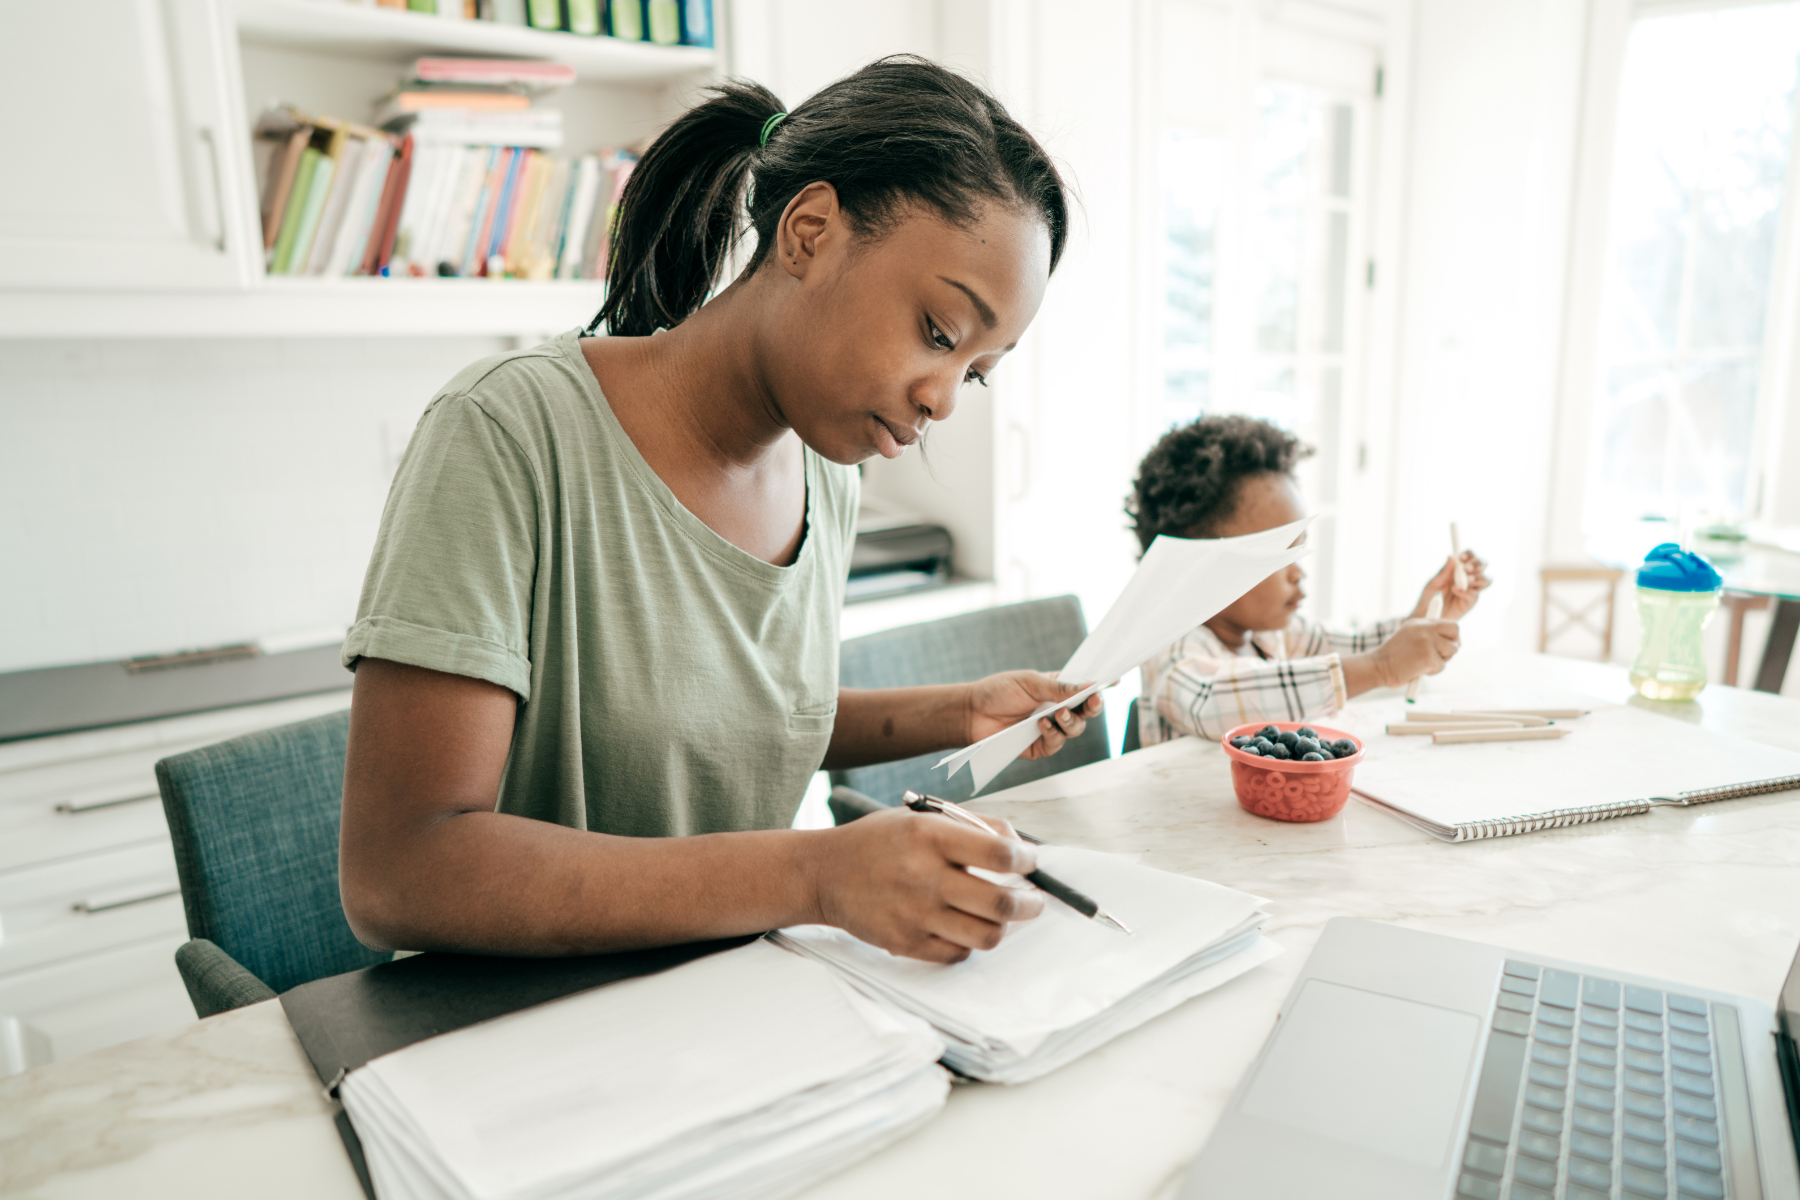 Working At Home With Kids: Tips To Help You Manage The Unmanageable